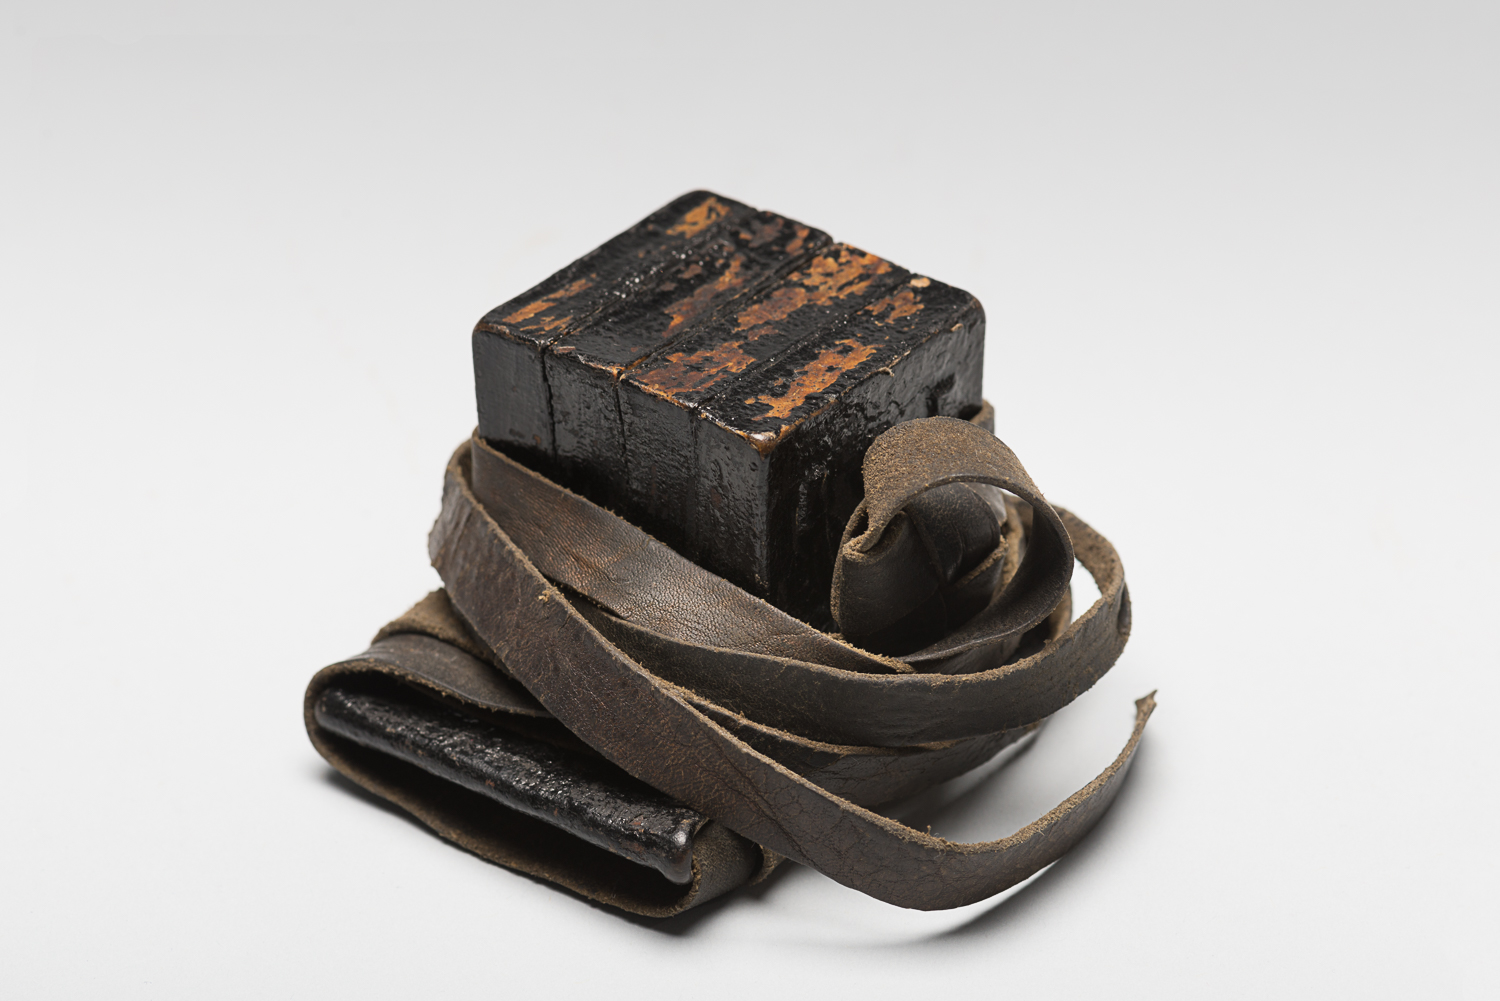 The straps are wrapped in a specific way during prayer recitations. (Photo: Peter Berra)